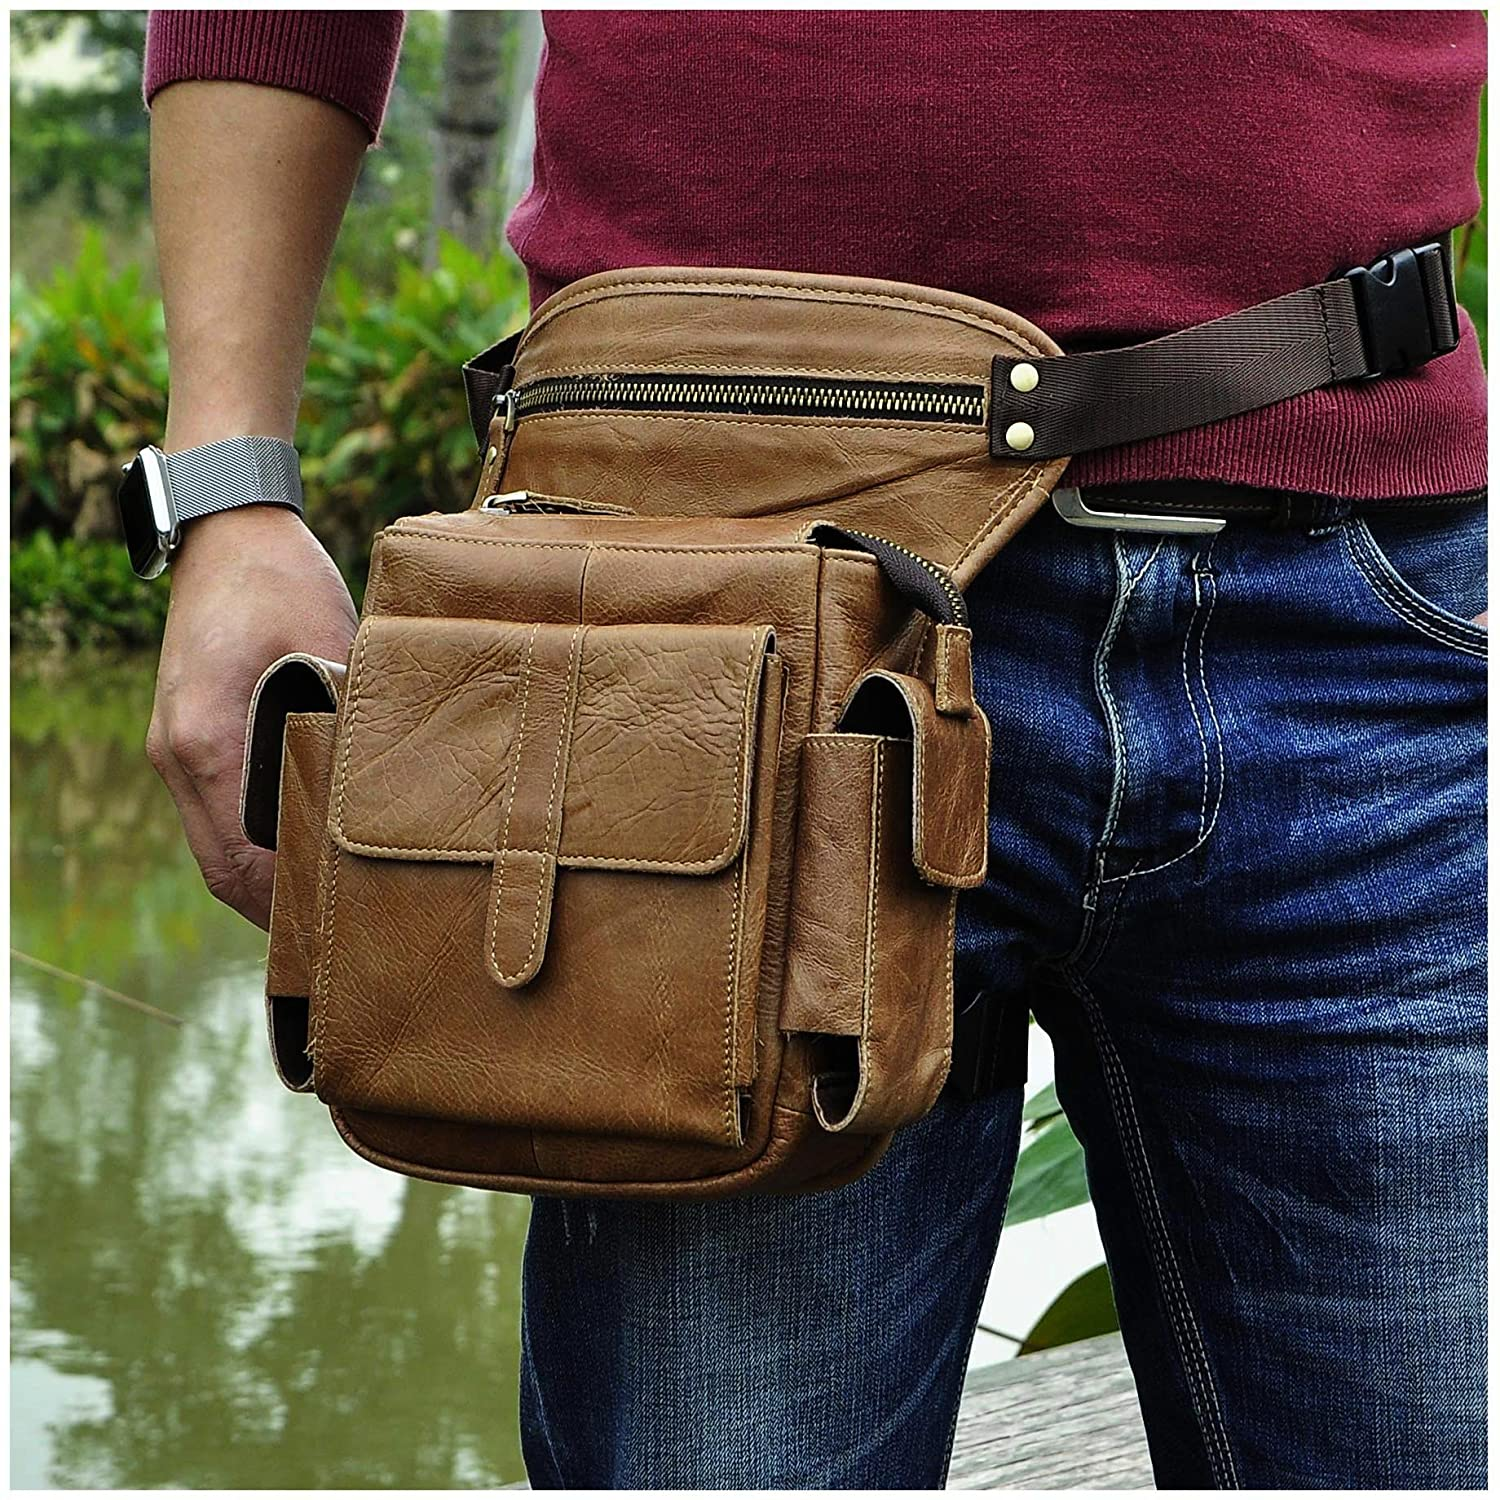 Le'aokuu Mens Genuine Leather Bike Cycling Waist Hip Bum Fanny Pack Drop Leg Bag (Dark Brown)